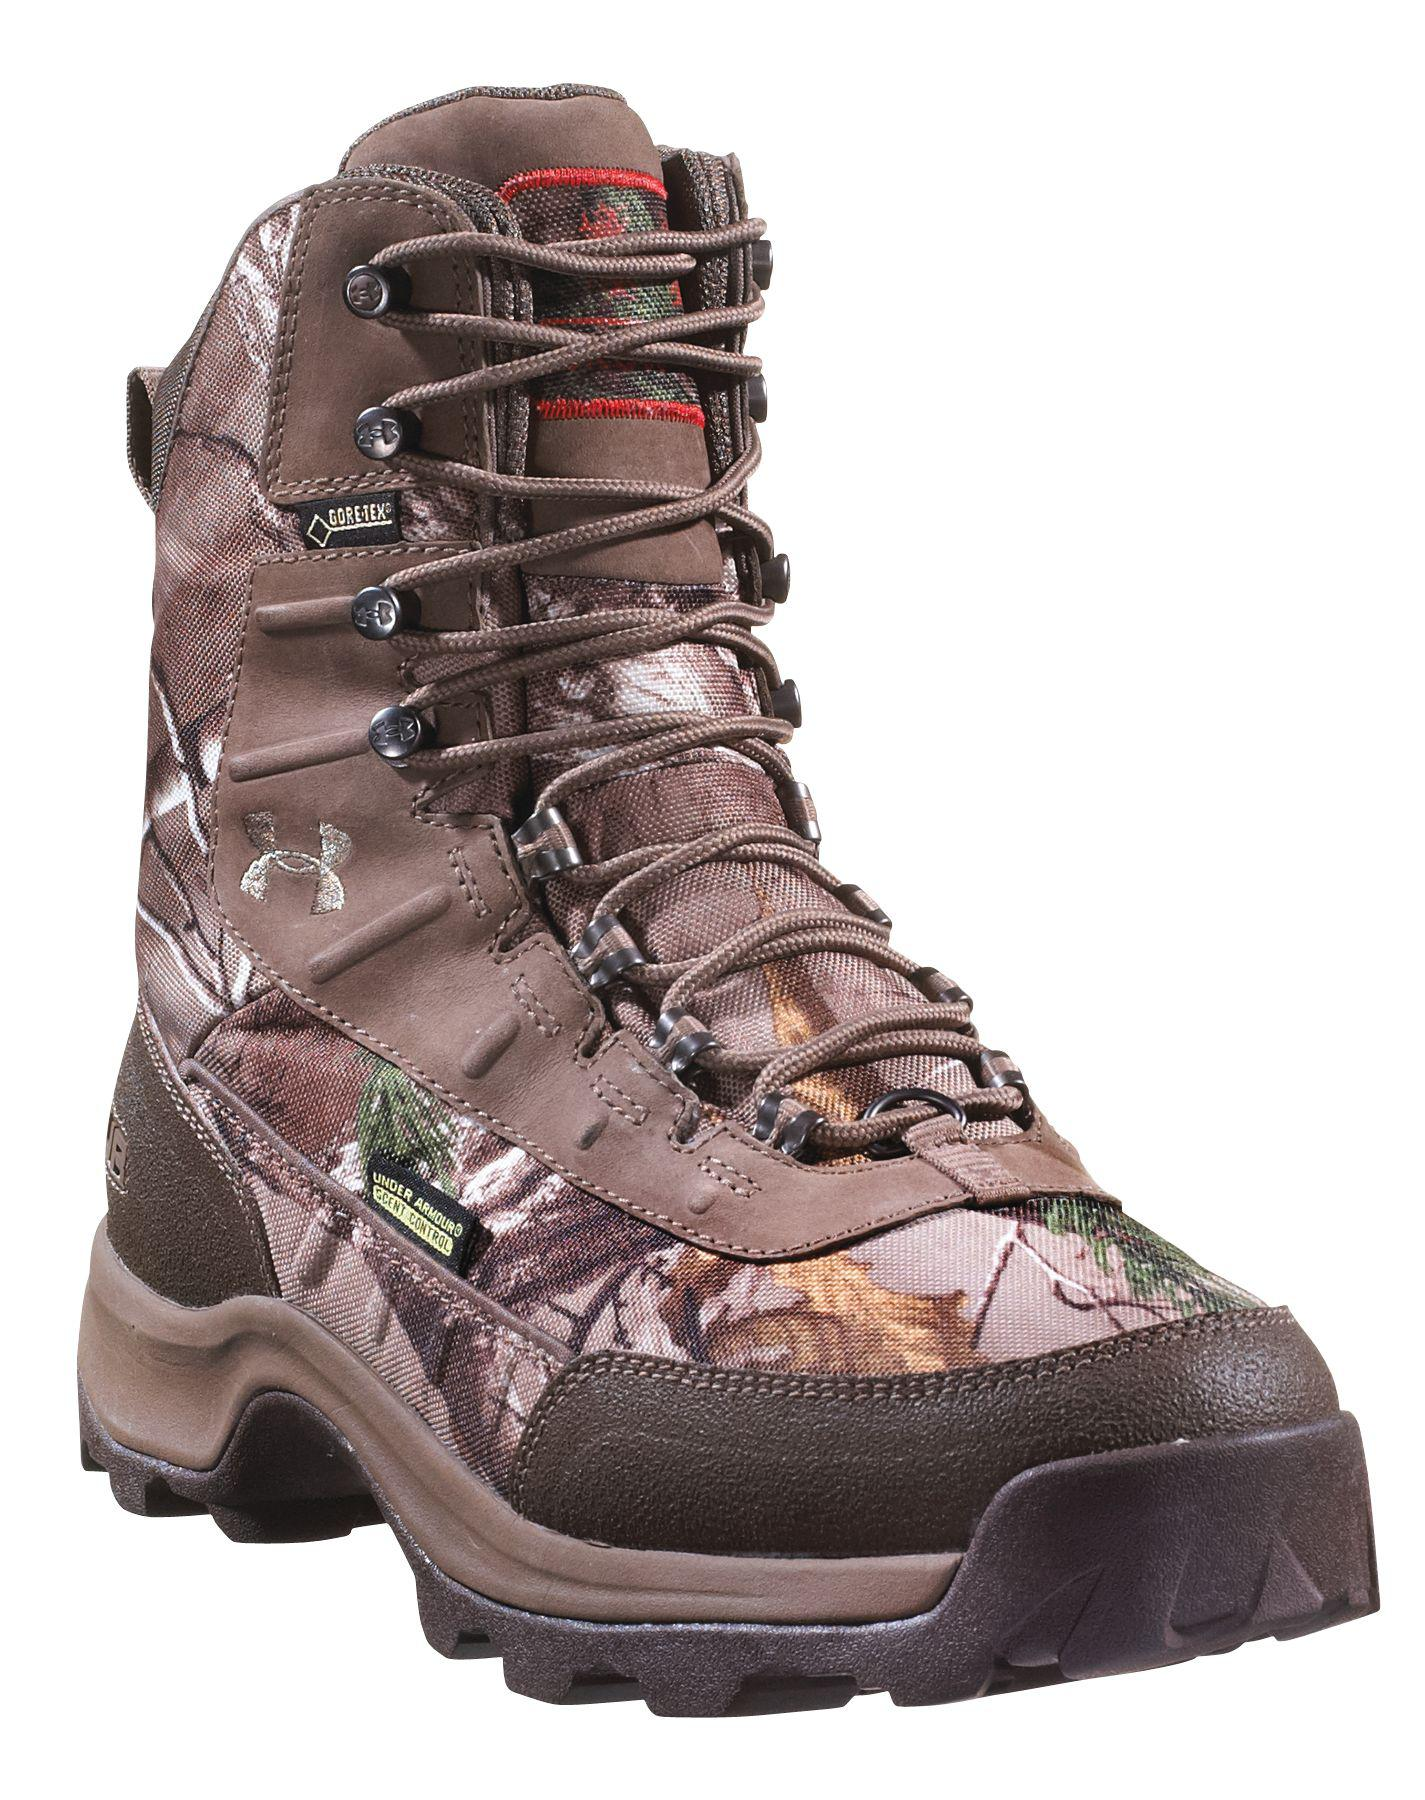 7300a046425 Under Armour Row Tine Gore-tex 800g Hunting Boots in Brown for Men ...